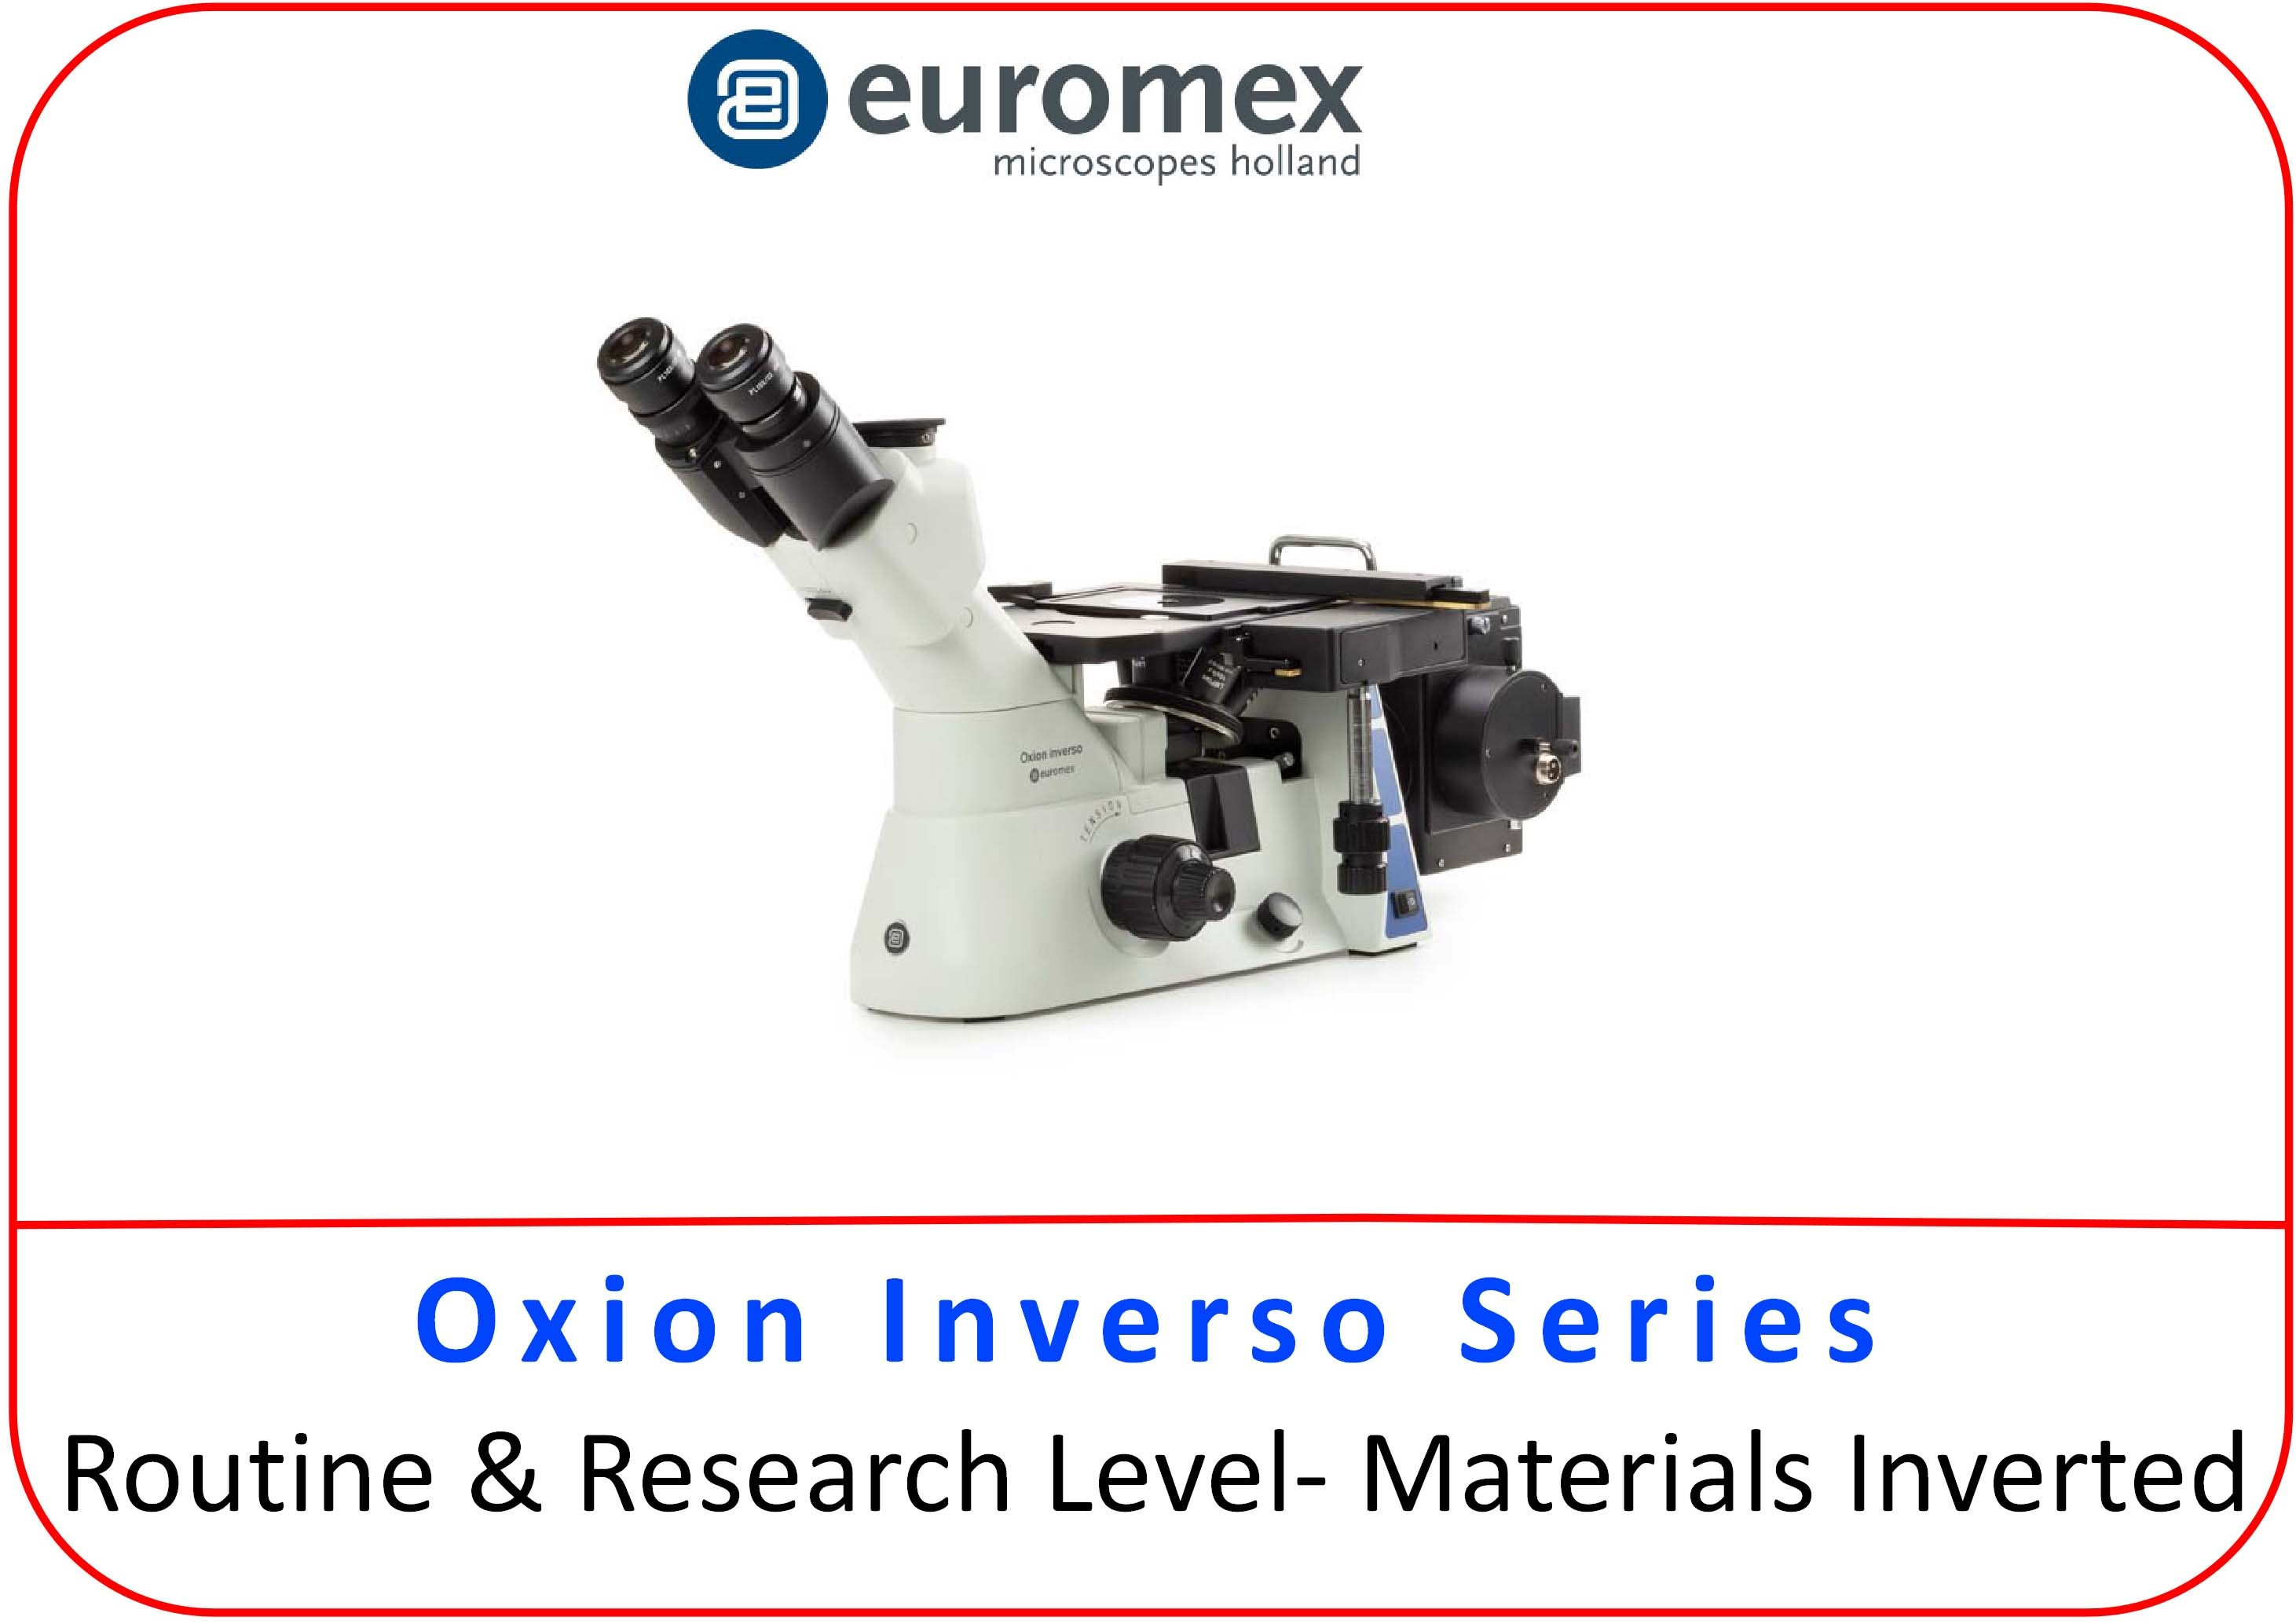 oxion_inverso_mat_button